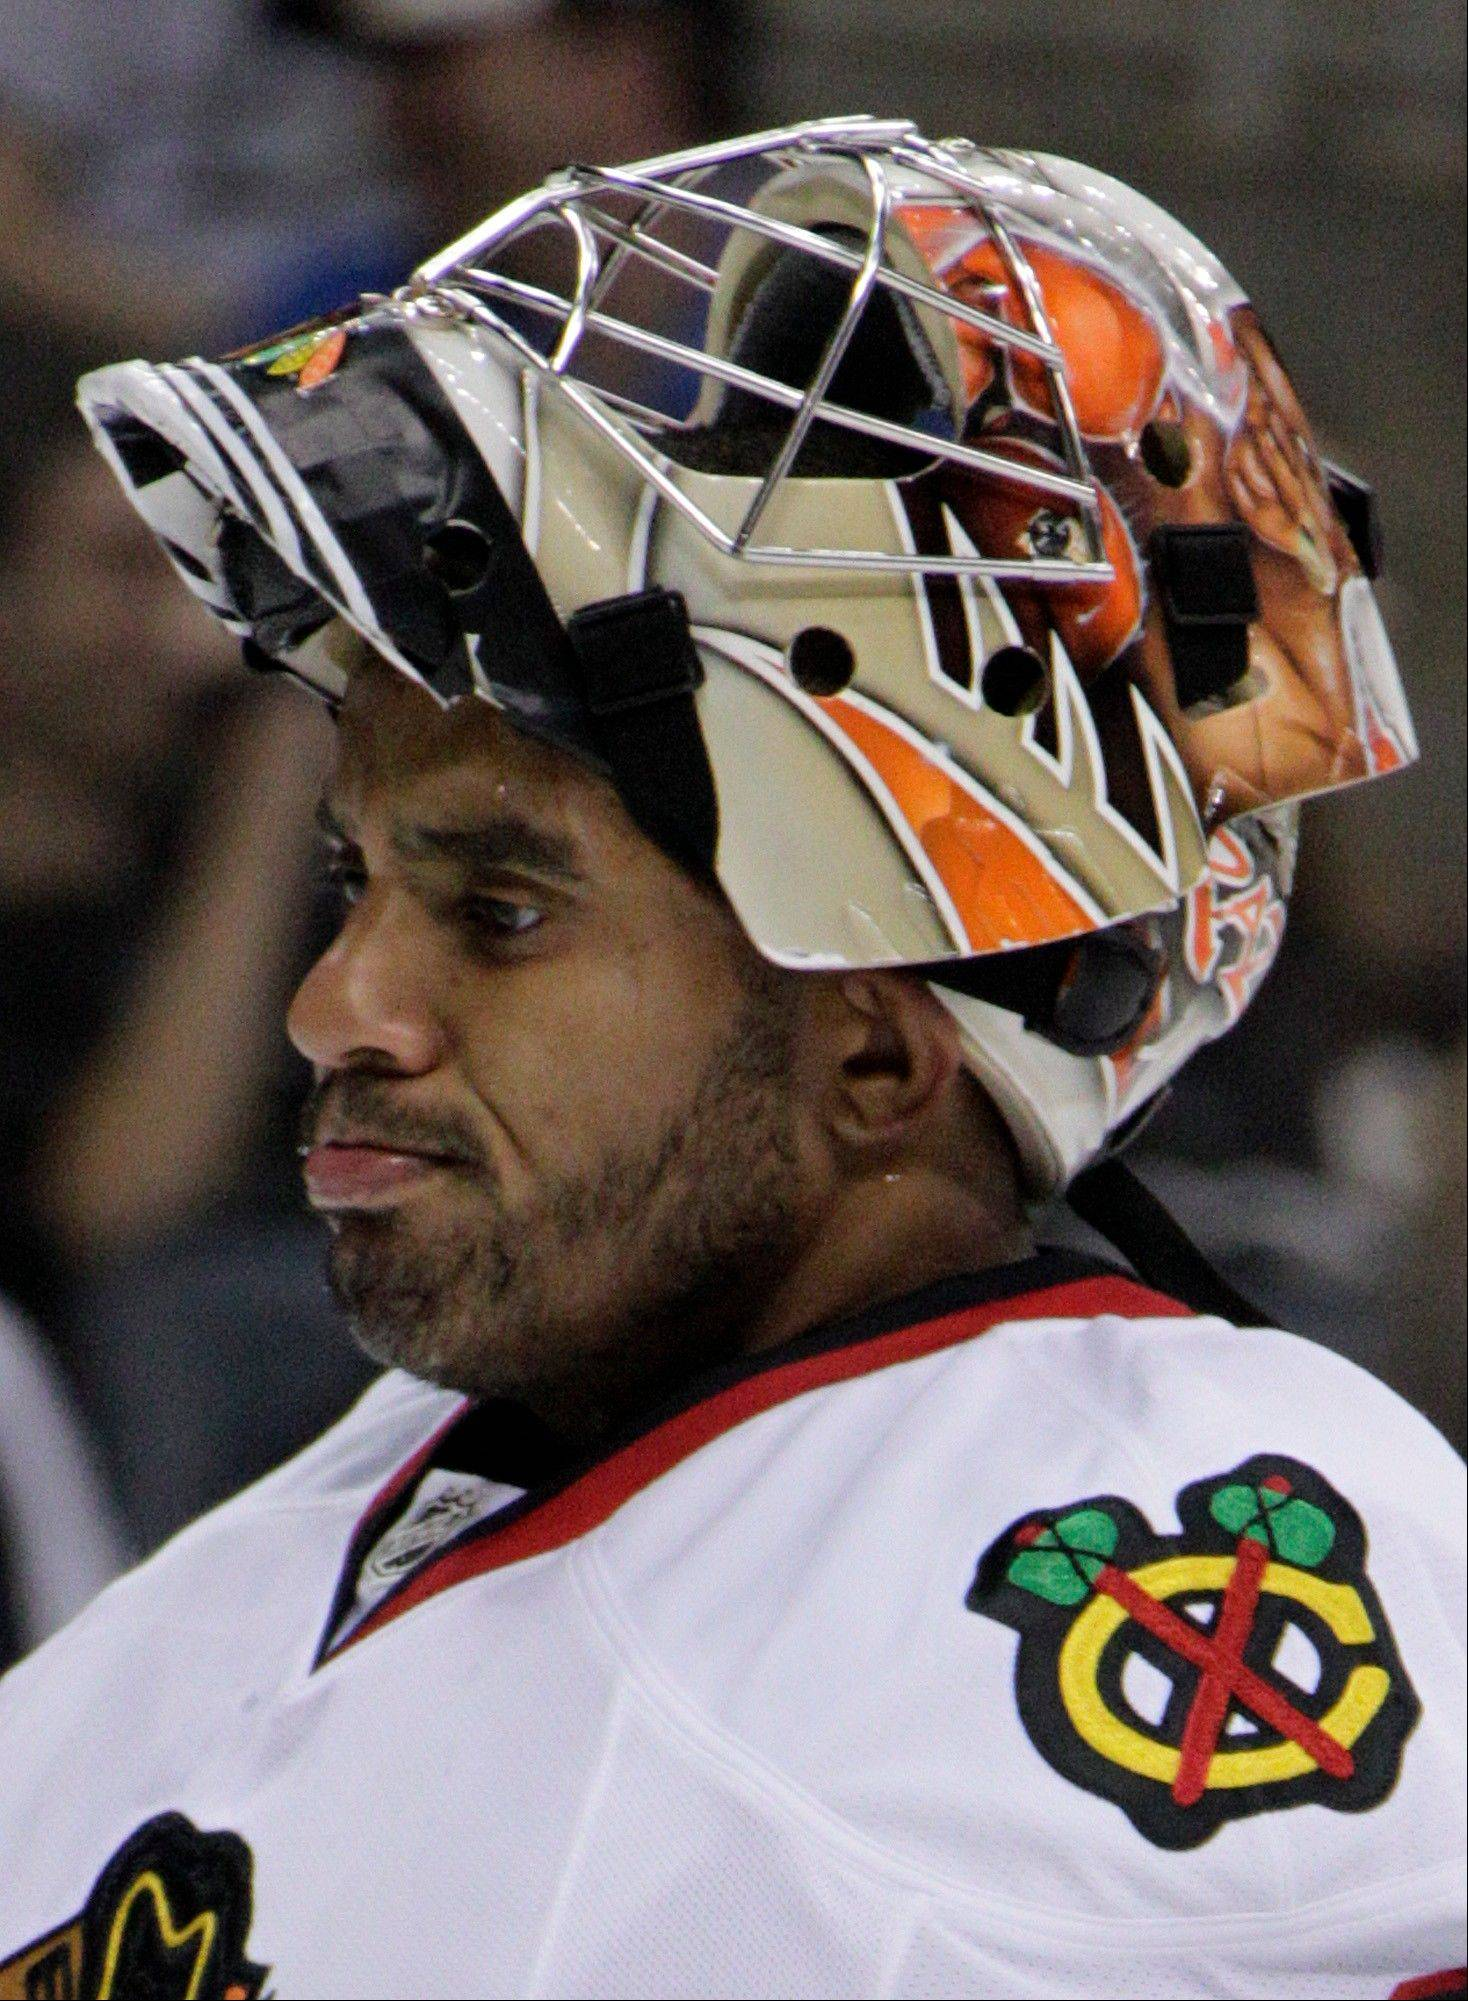 Ray Emery allowed 4 third-period goals to Pittsburgh on Thursday, but the battle for the backup goalie spot is still wide open.